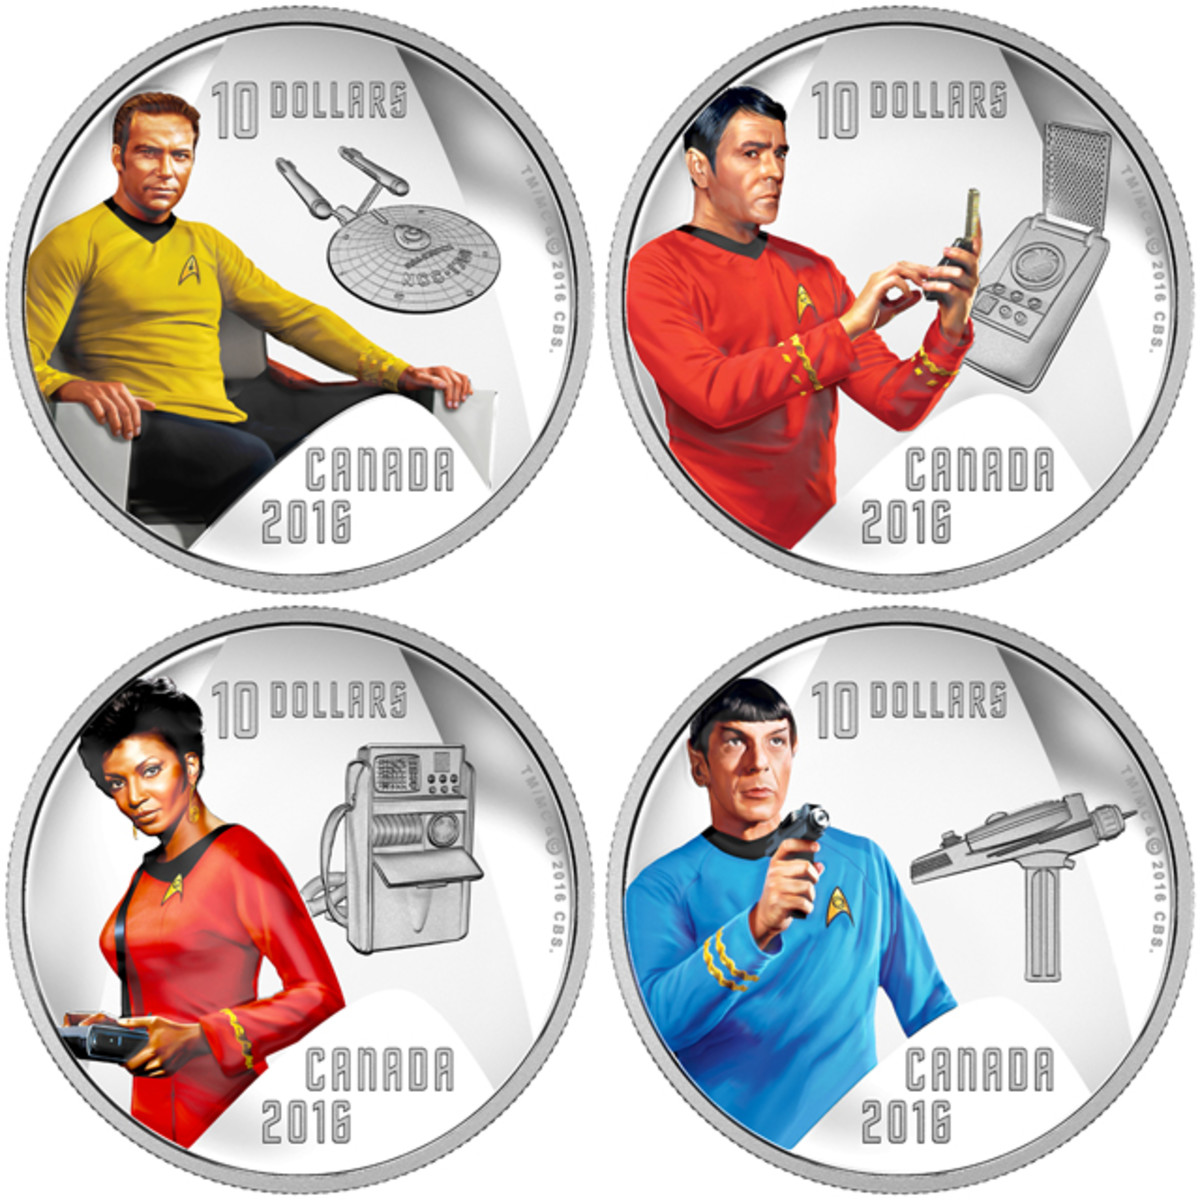 Canada's four $10 silver proofs celebrating 50 years of the original Star Trek. The coins show eight icons from that first series: Captain James Tiberius Kirk and the U.S.S. Enterprise, Lieutenant Commander Montgomery Scott and a communicator, Communications Officer Lieutenant Uhura and a tricorder, and Lieutenant Commander Spock with a phaser. Images courtesy RCM. TM & © 2016 CBS Studios Inc. STAR TREK and related marks and logos are trademarks of CBS Studios Inc. All Rights Reserved.